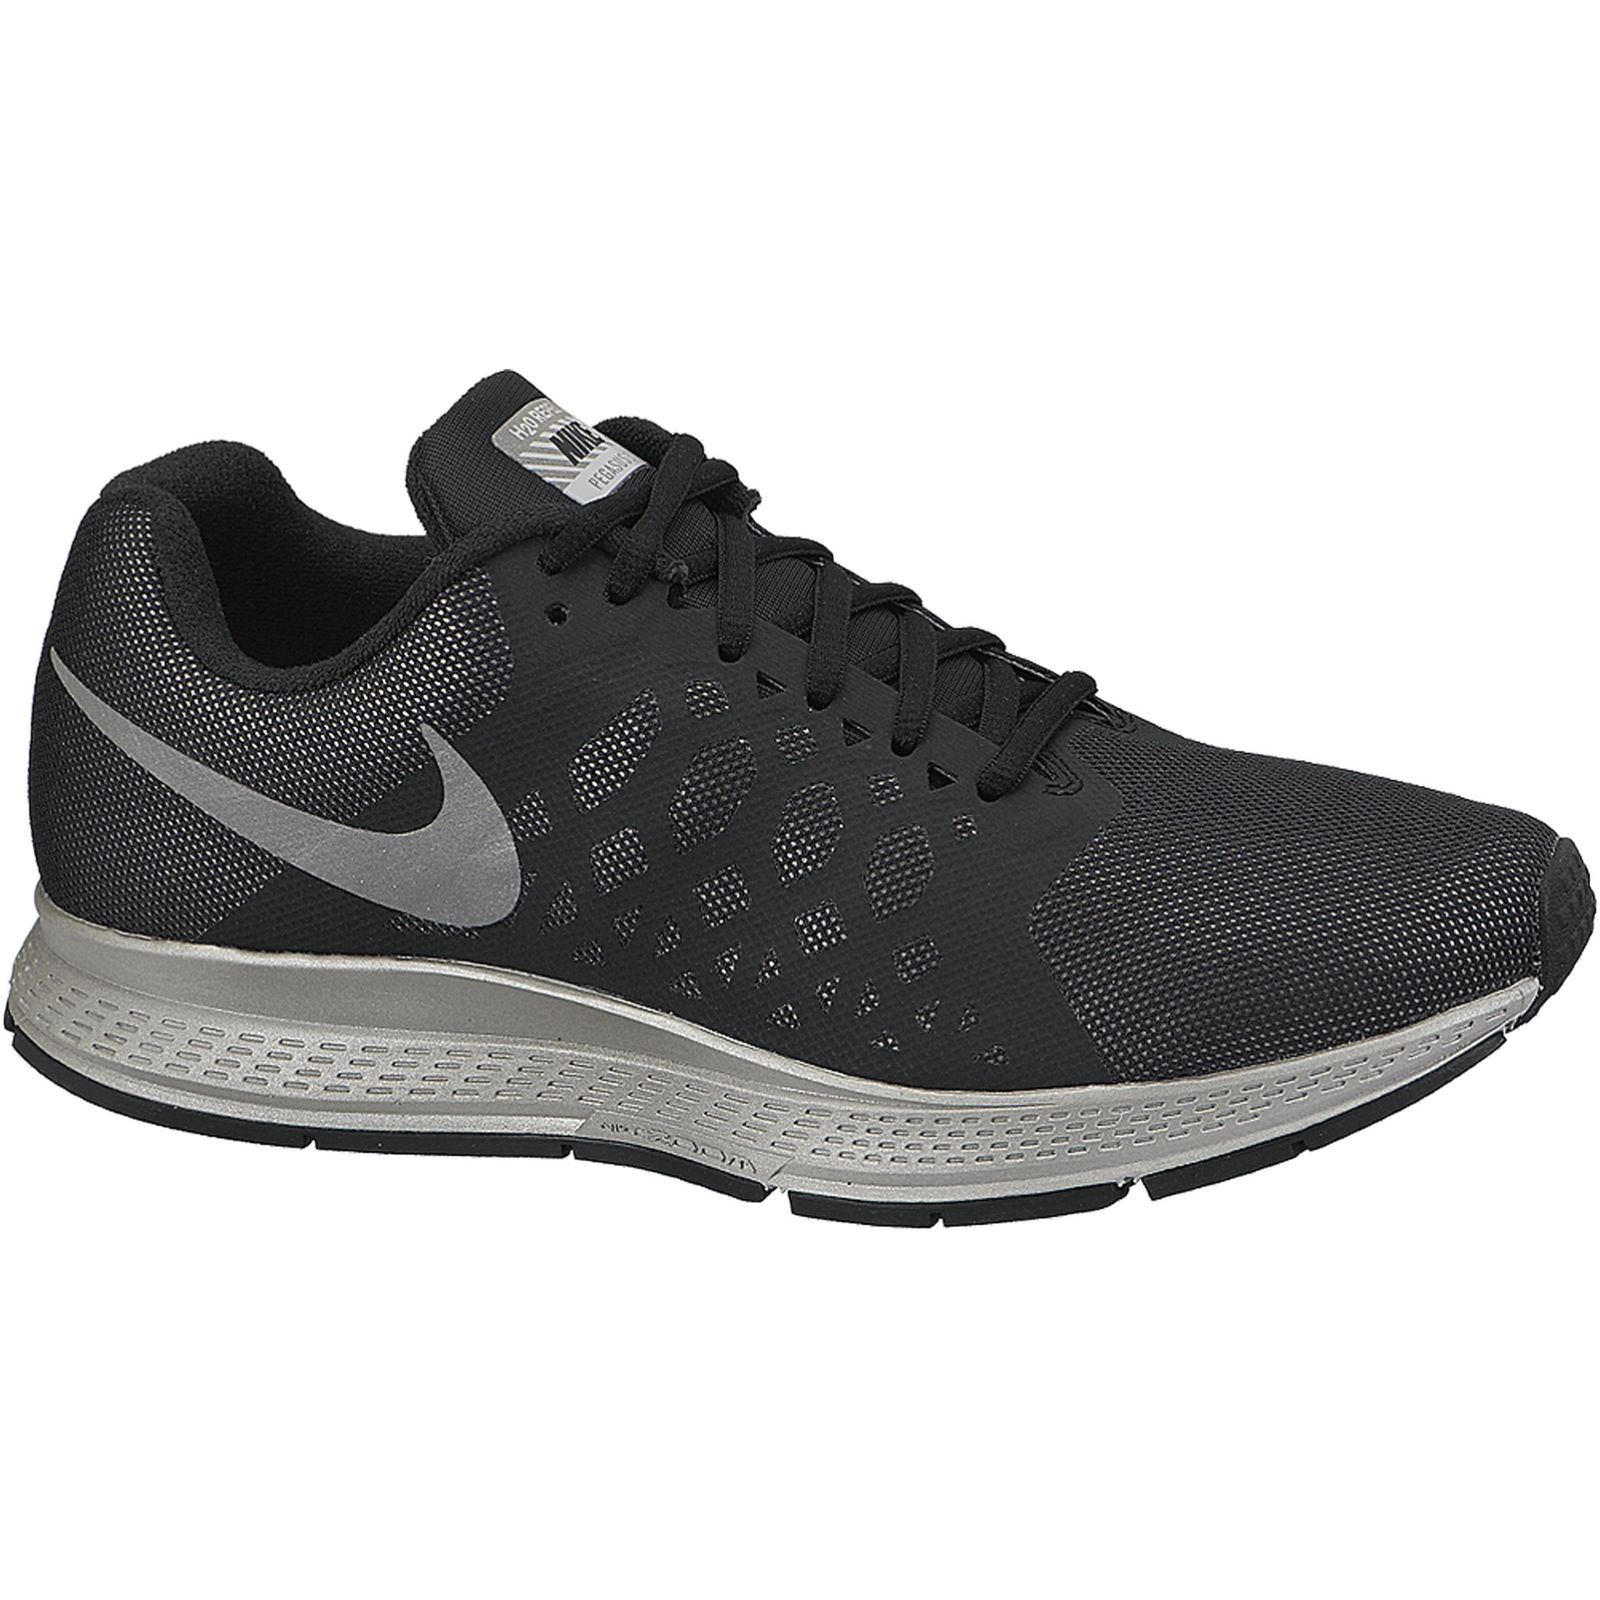 zapatillas nike zoom pegasus 31 mujer. Black Bedroom Furniture Sets. Home Design Ideas